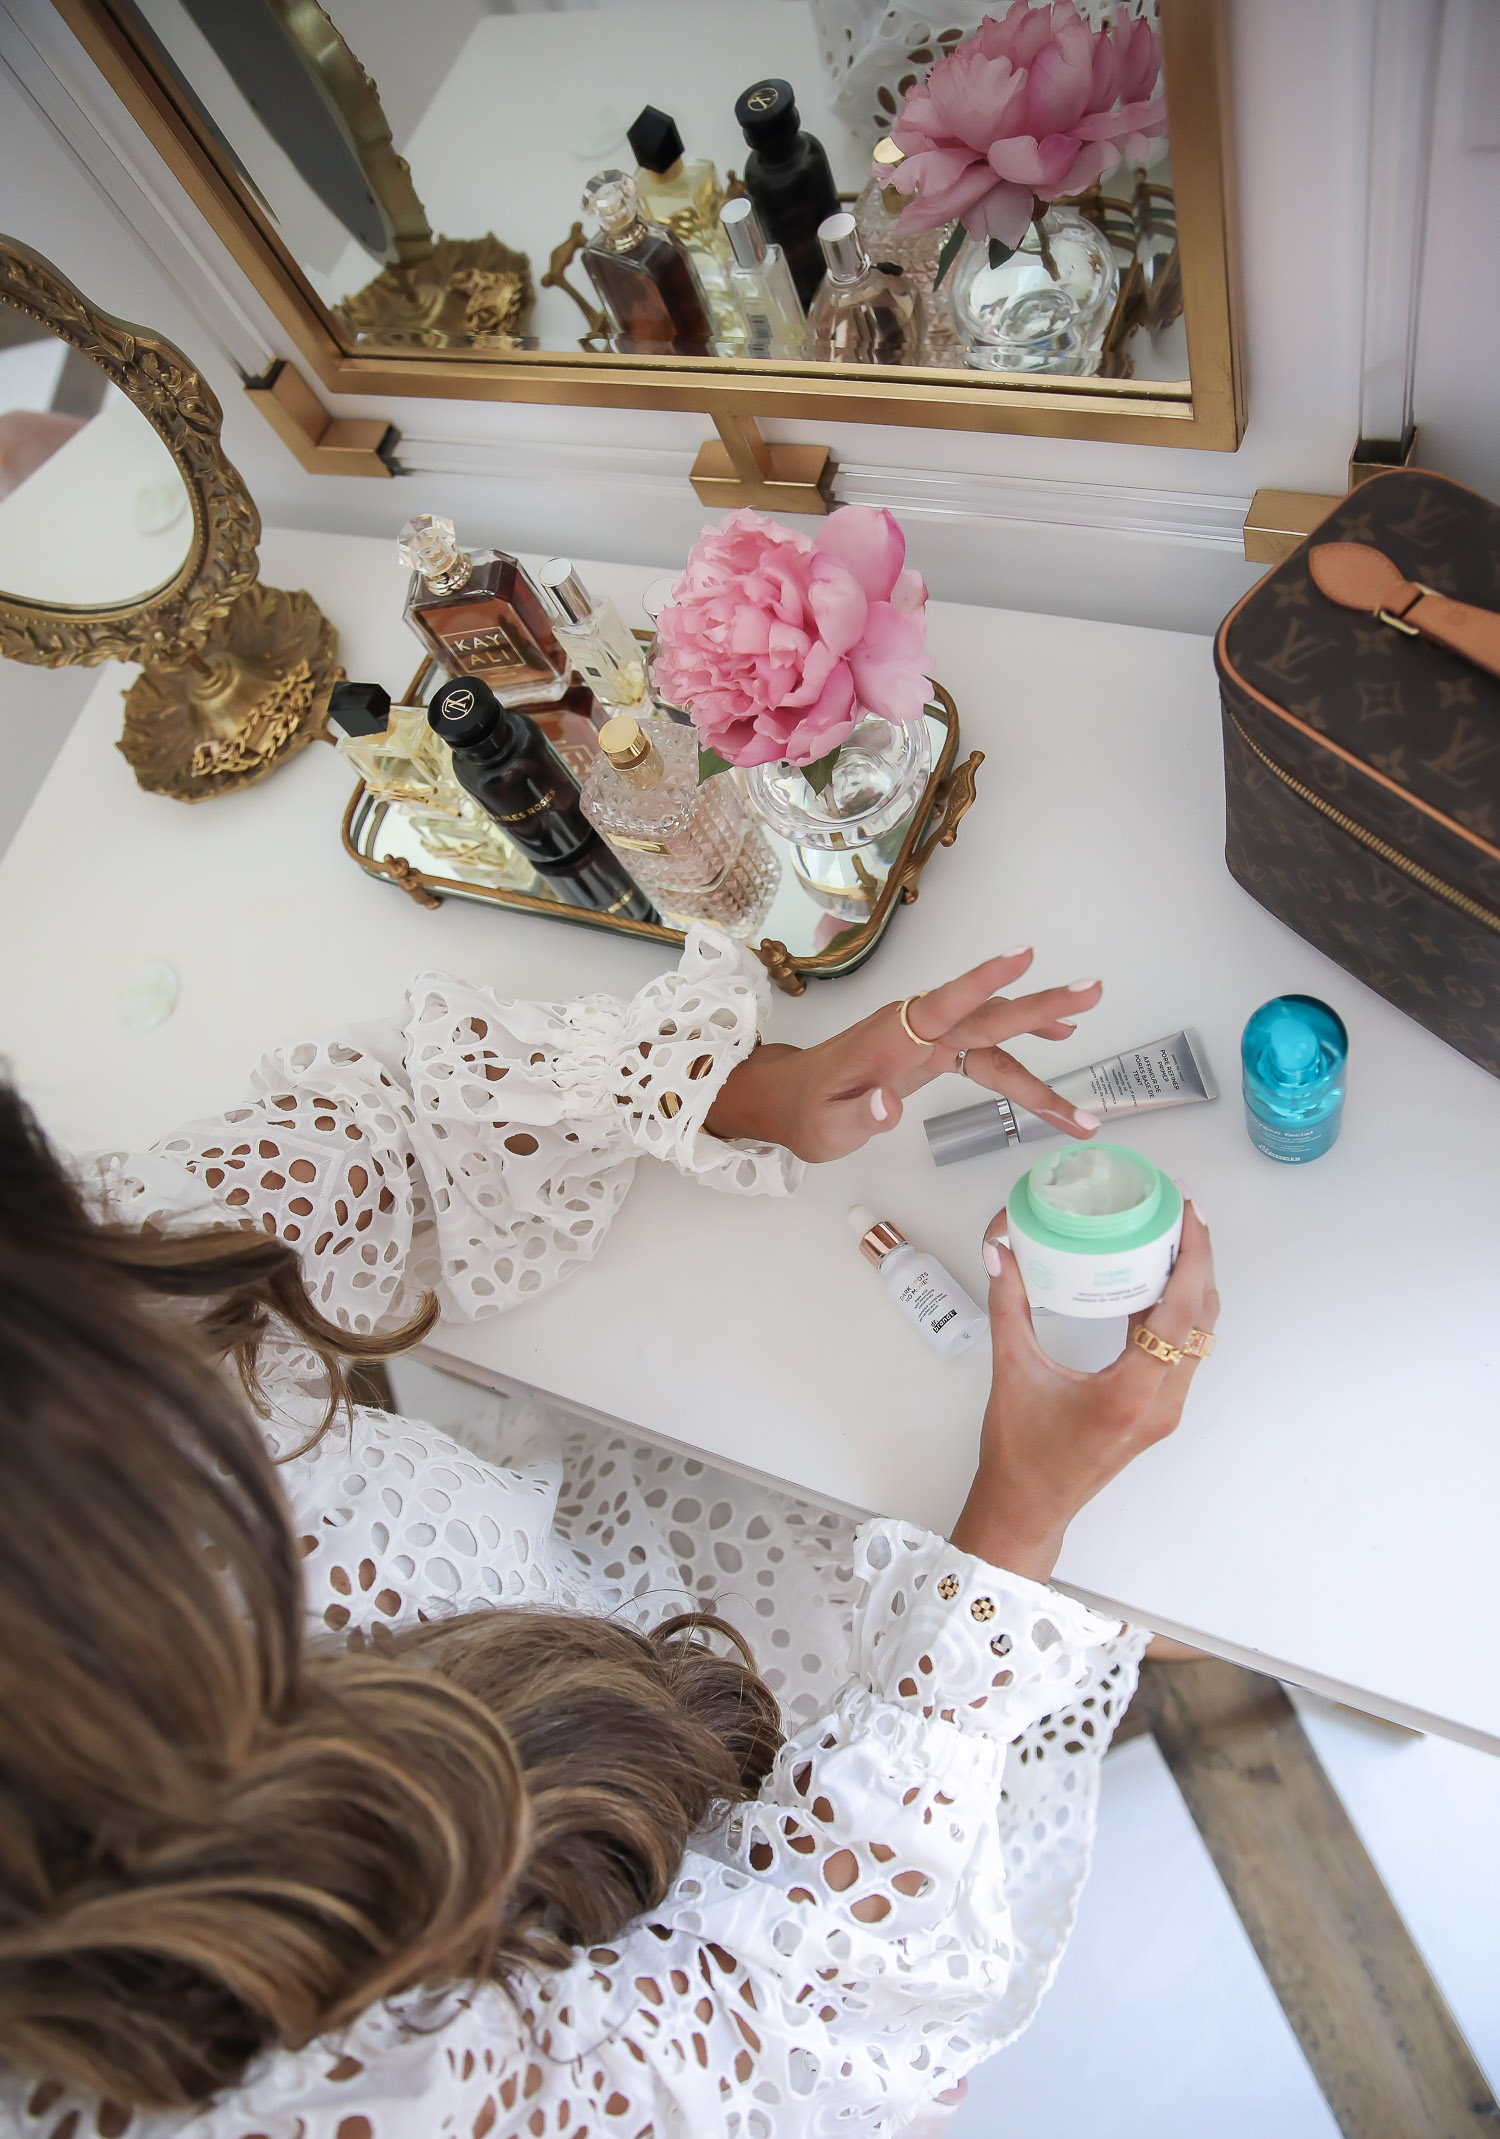 Dr Brandt Pore Refiner Primer by popular US beauty blog, The Sweetest Thing: image of Emily Gemma wearing a H & M Eyelet Embroidery Dress and holding a bottle of Dr Brandt Hydro Biotic while sitting at her vanity.